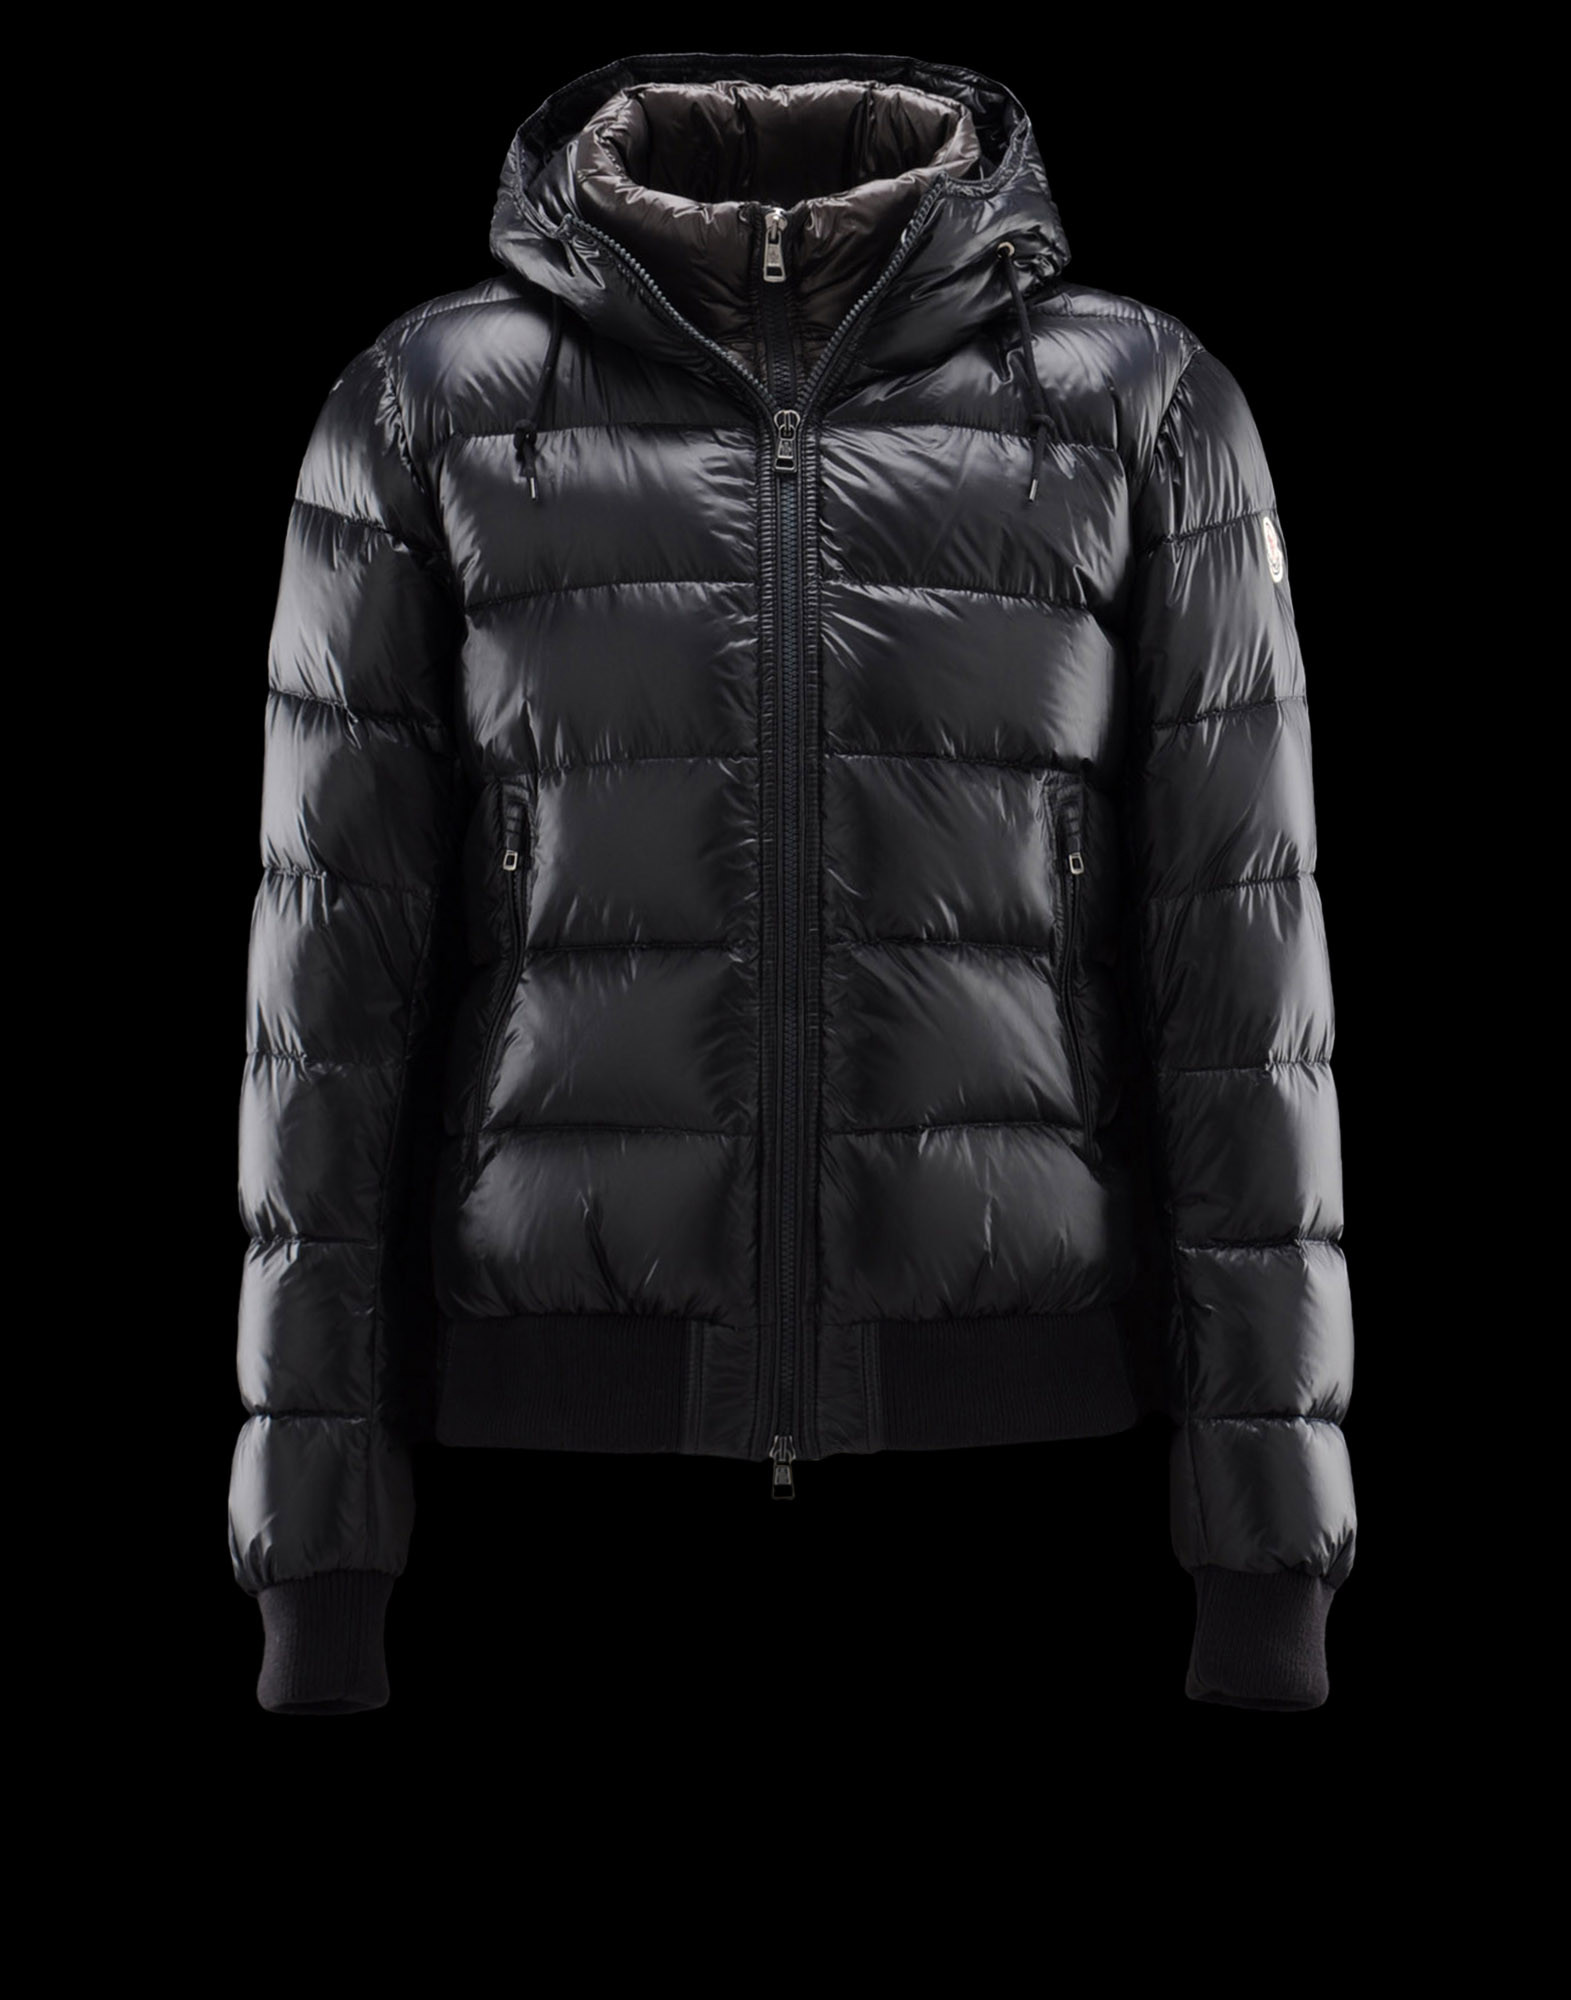 825362 Moncler Outlet Orlando Moncler Store Moncler Jacket For Women  - Italy